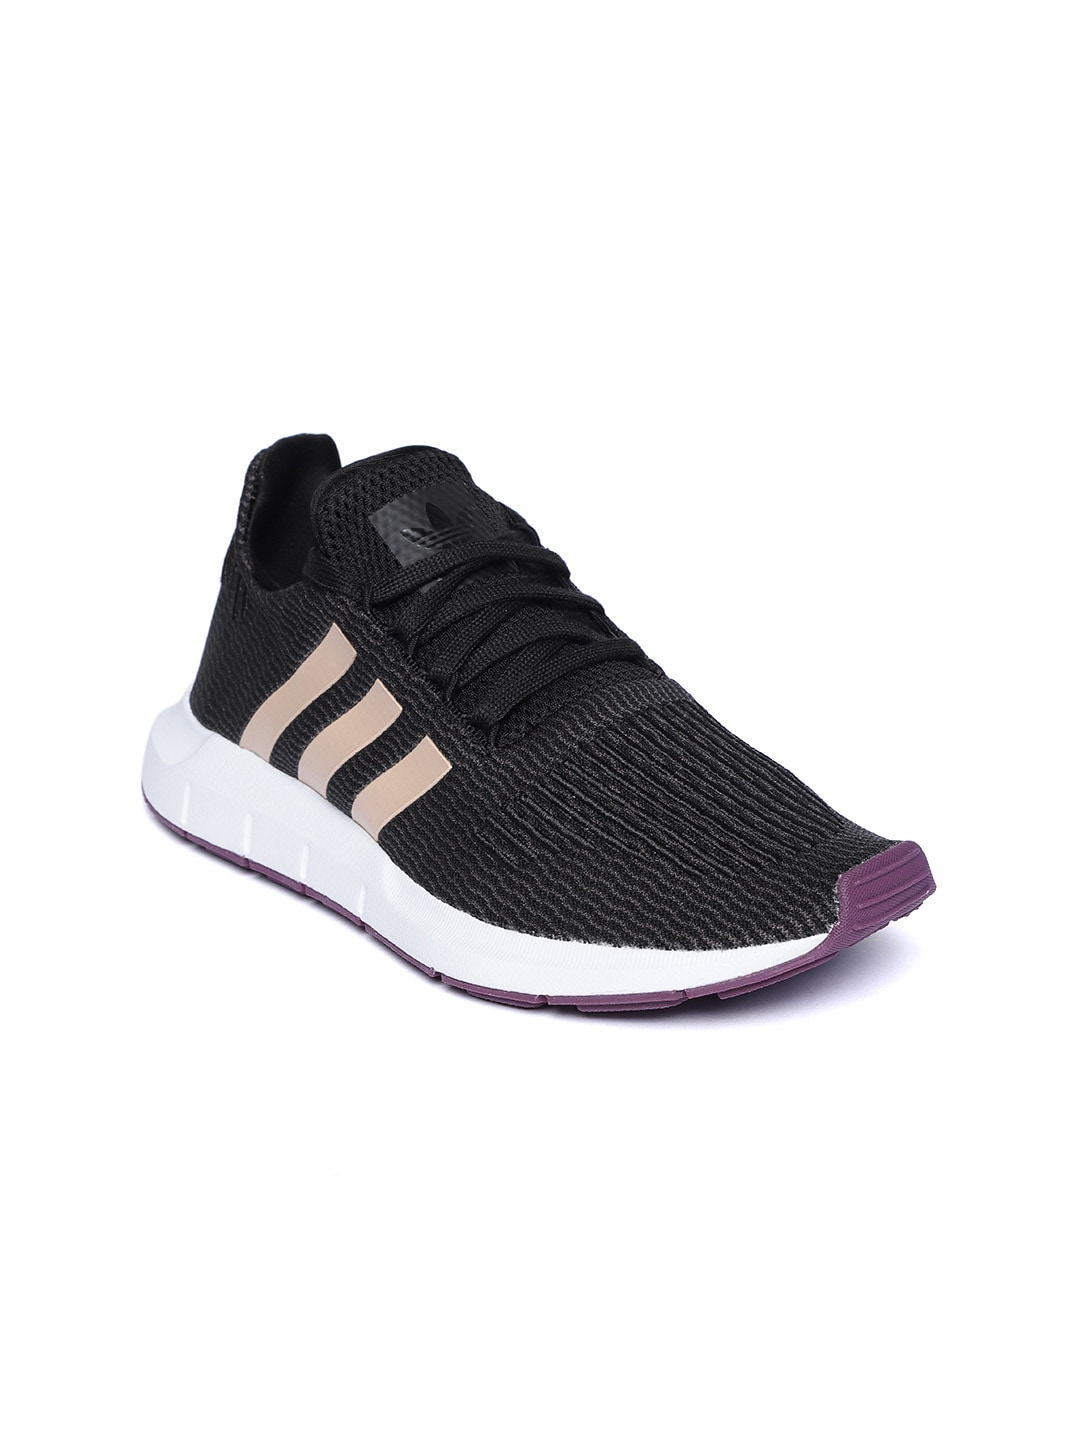 the latest 37ed4 5c101 Womens Adidas Shoes - Buy Adidas Shoes for Women Online in I